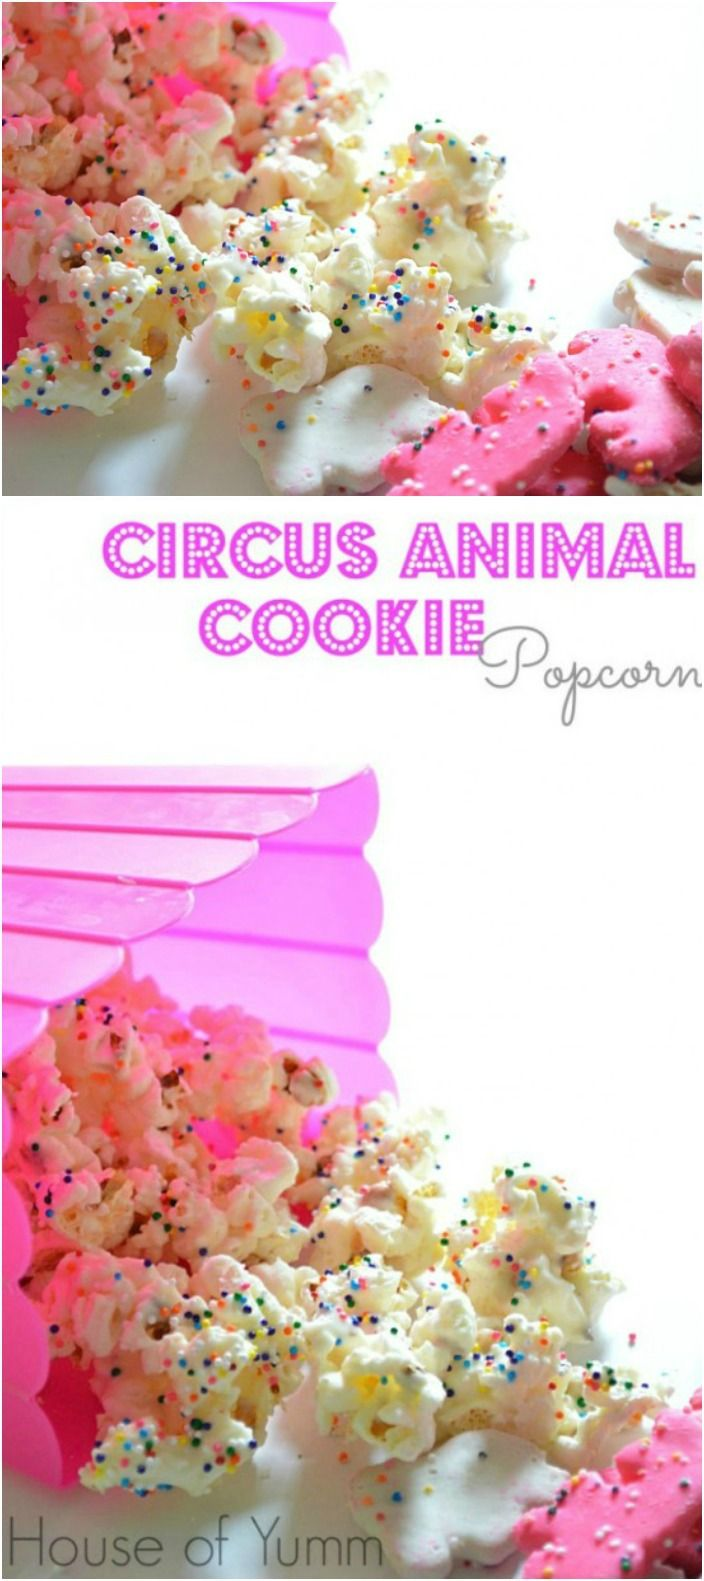 Circus Animal Cookie Popcorn is the perfect fun snack idea to brighten up anyone's day.